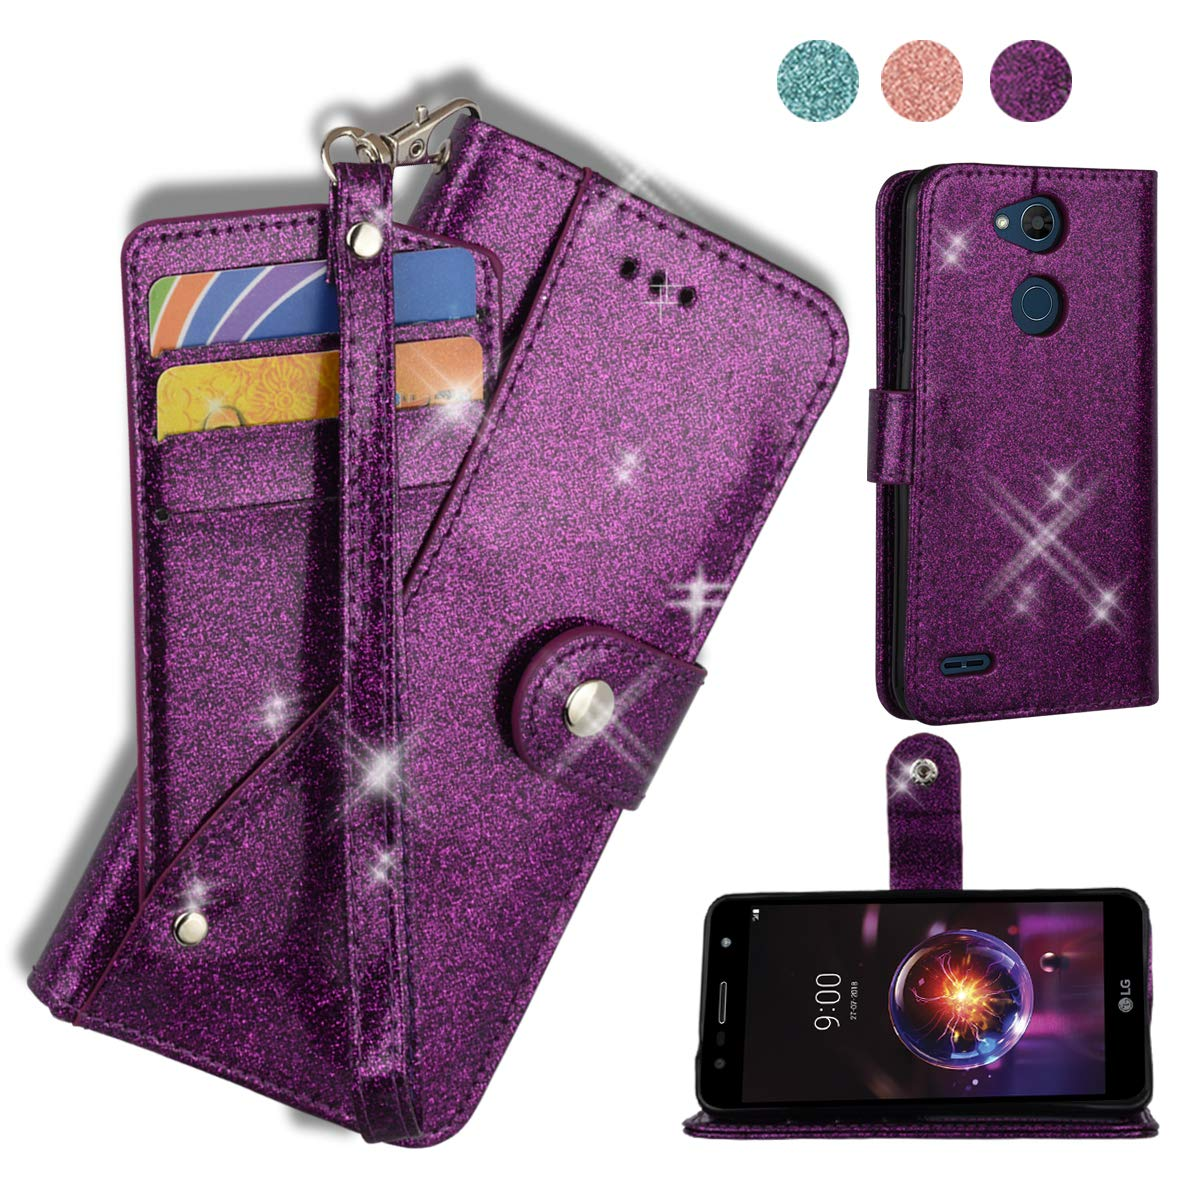 AYMECL LG X Power 3 Wallet Case,LG X Power 2/LG X Charge/LG K10 Power/Fiesta 2 LTE Case[Glitter Sparkly Style] Leather Kickstand Card Slots Case with ID and Credit Card Pockets for LG LV7-PT Purple